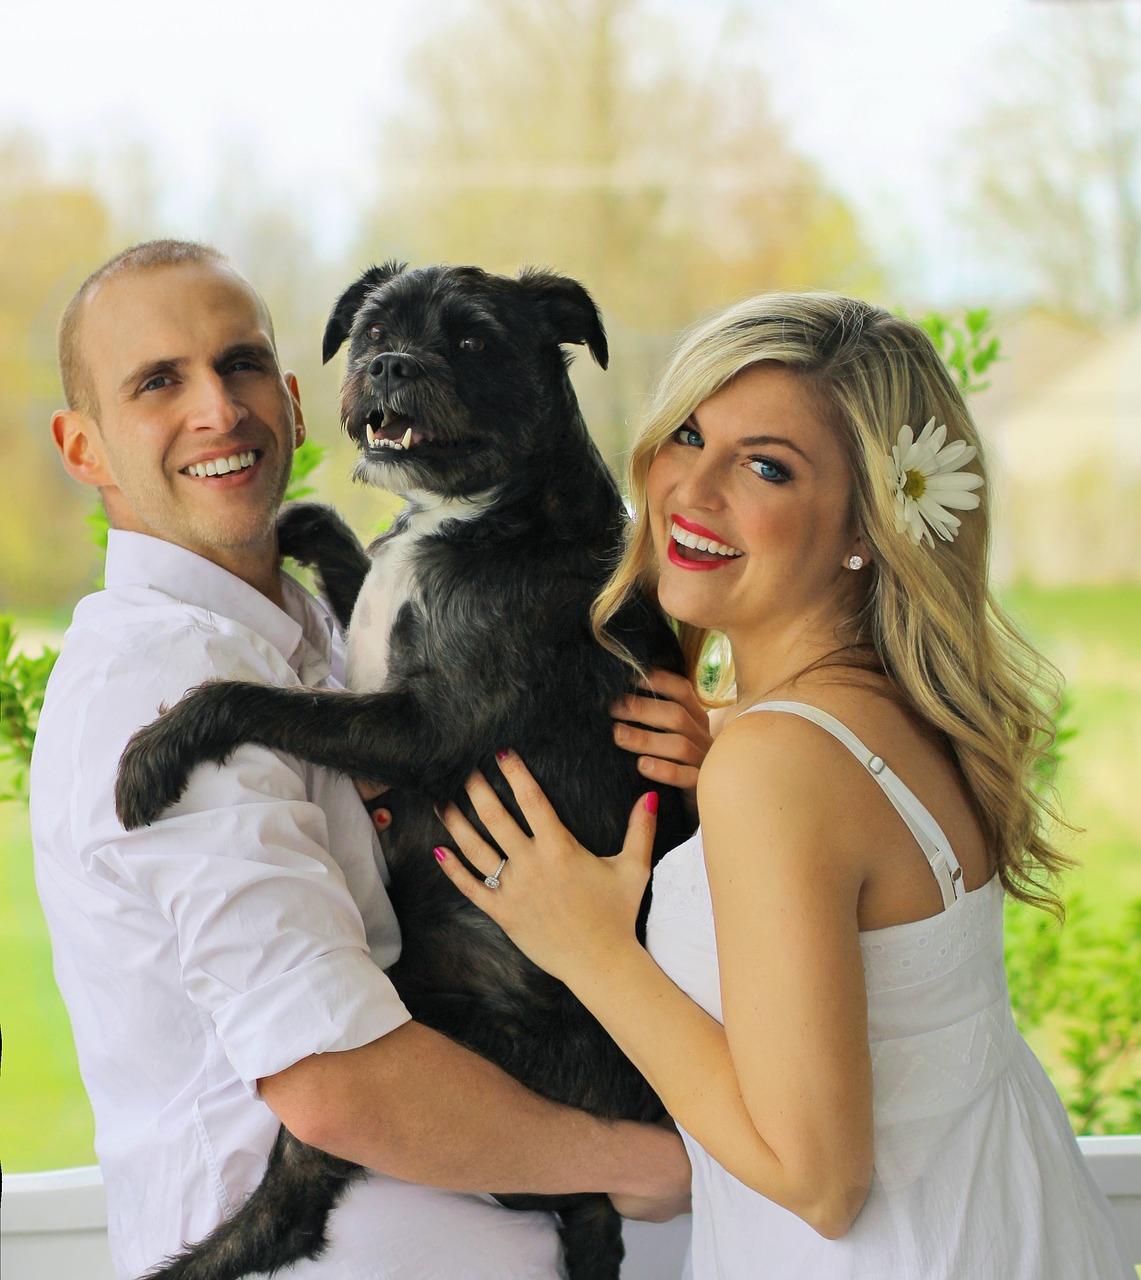 Divorce Cases: Dogs Are 'bones Of Contention' In Divorce Cases, Says